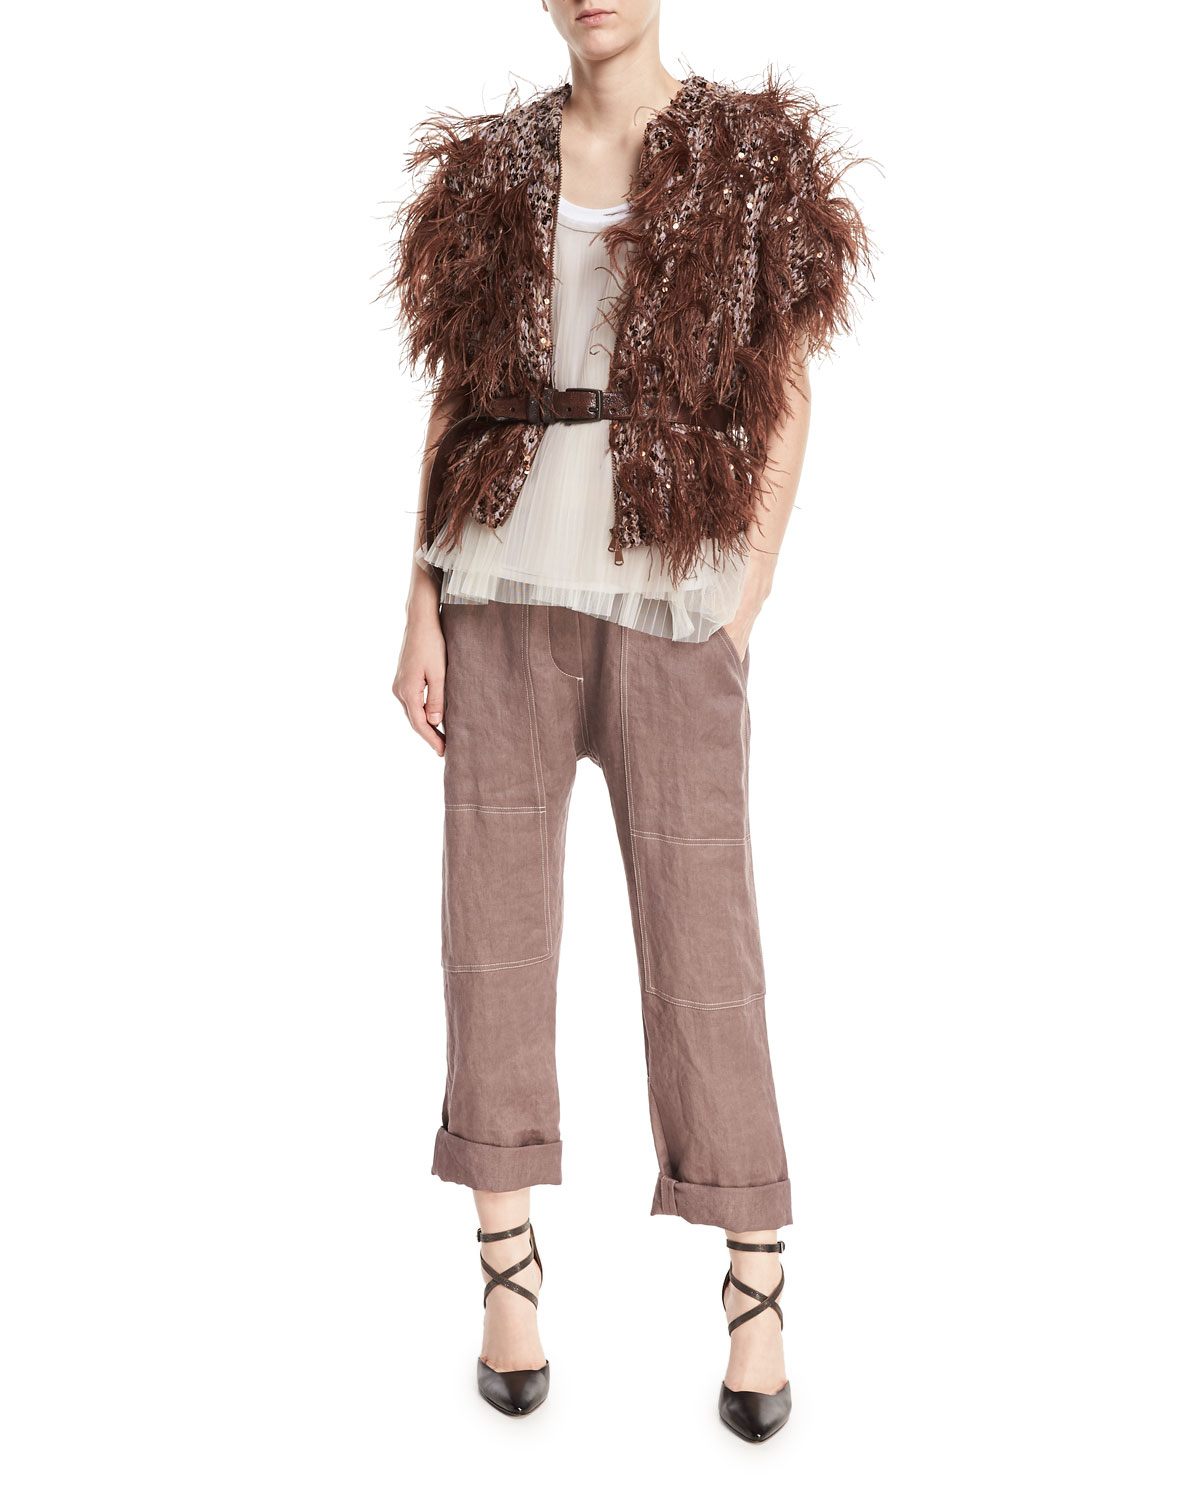 Cap-Sleeve Zip-Front Cashmere Cardigan with Feathers & Sequins